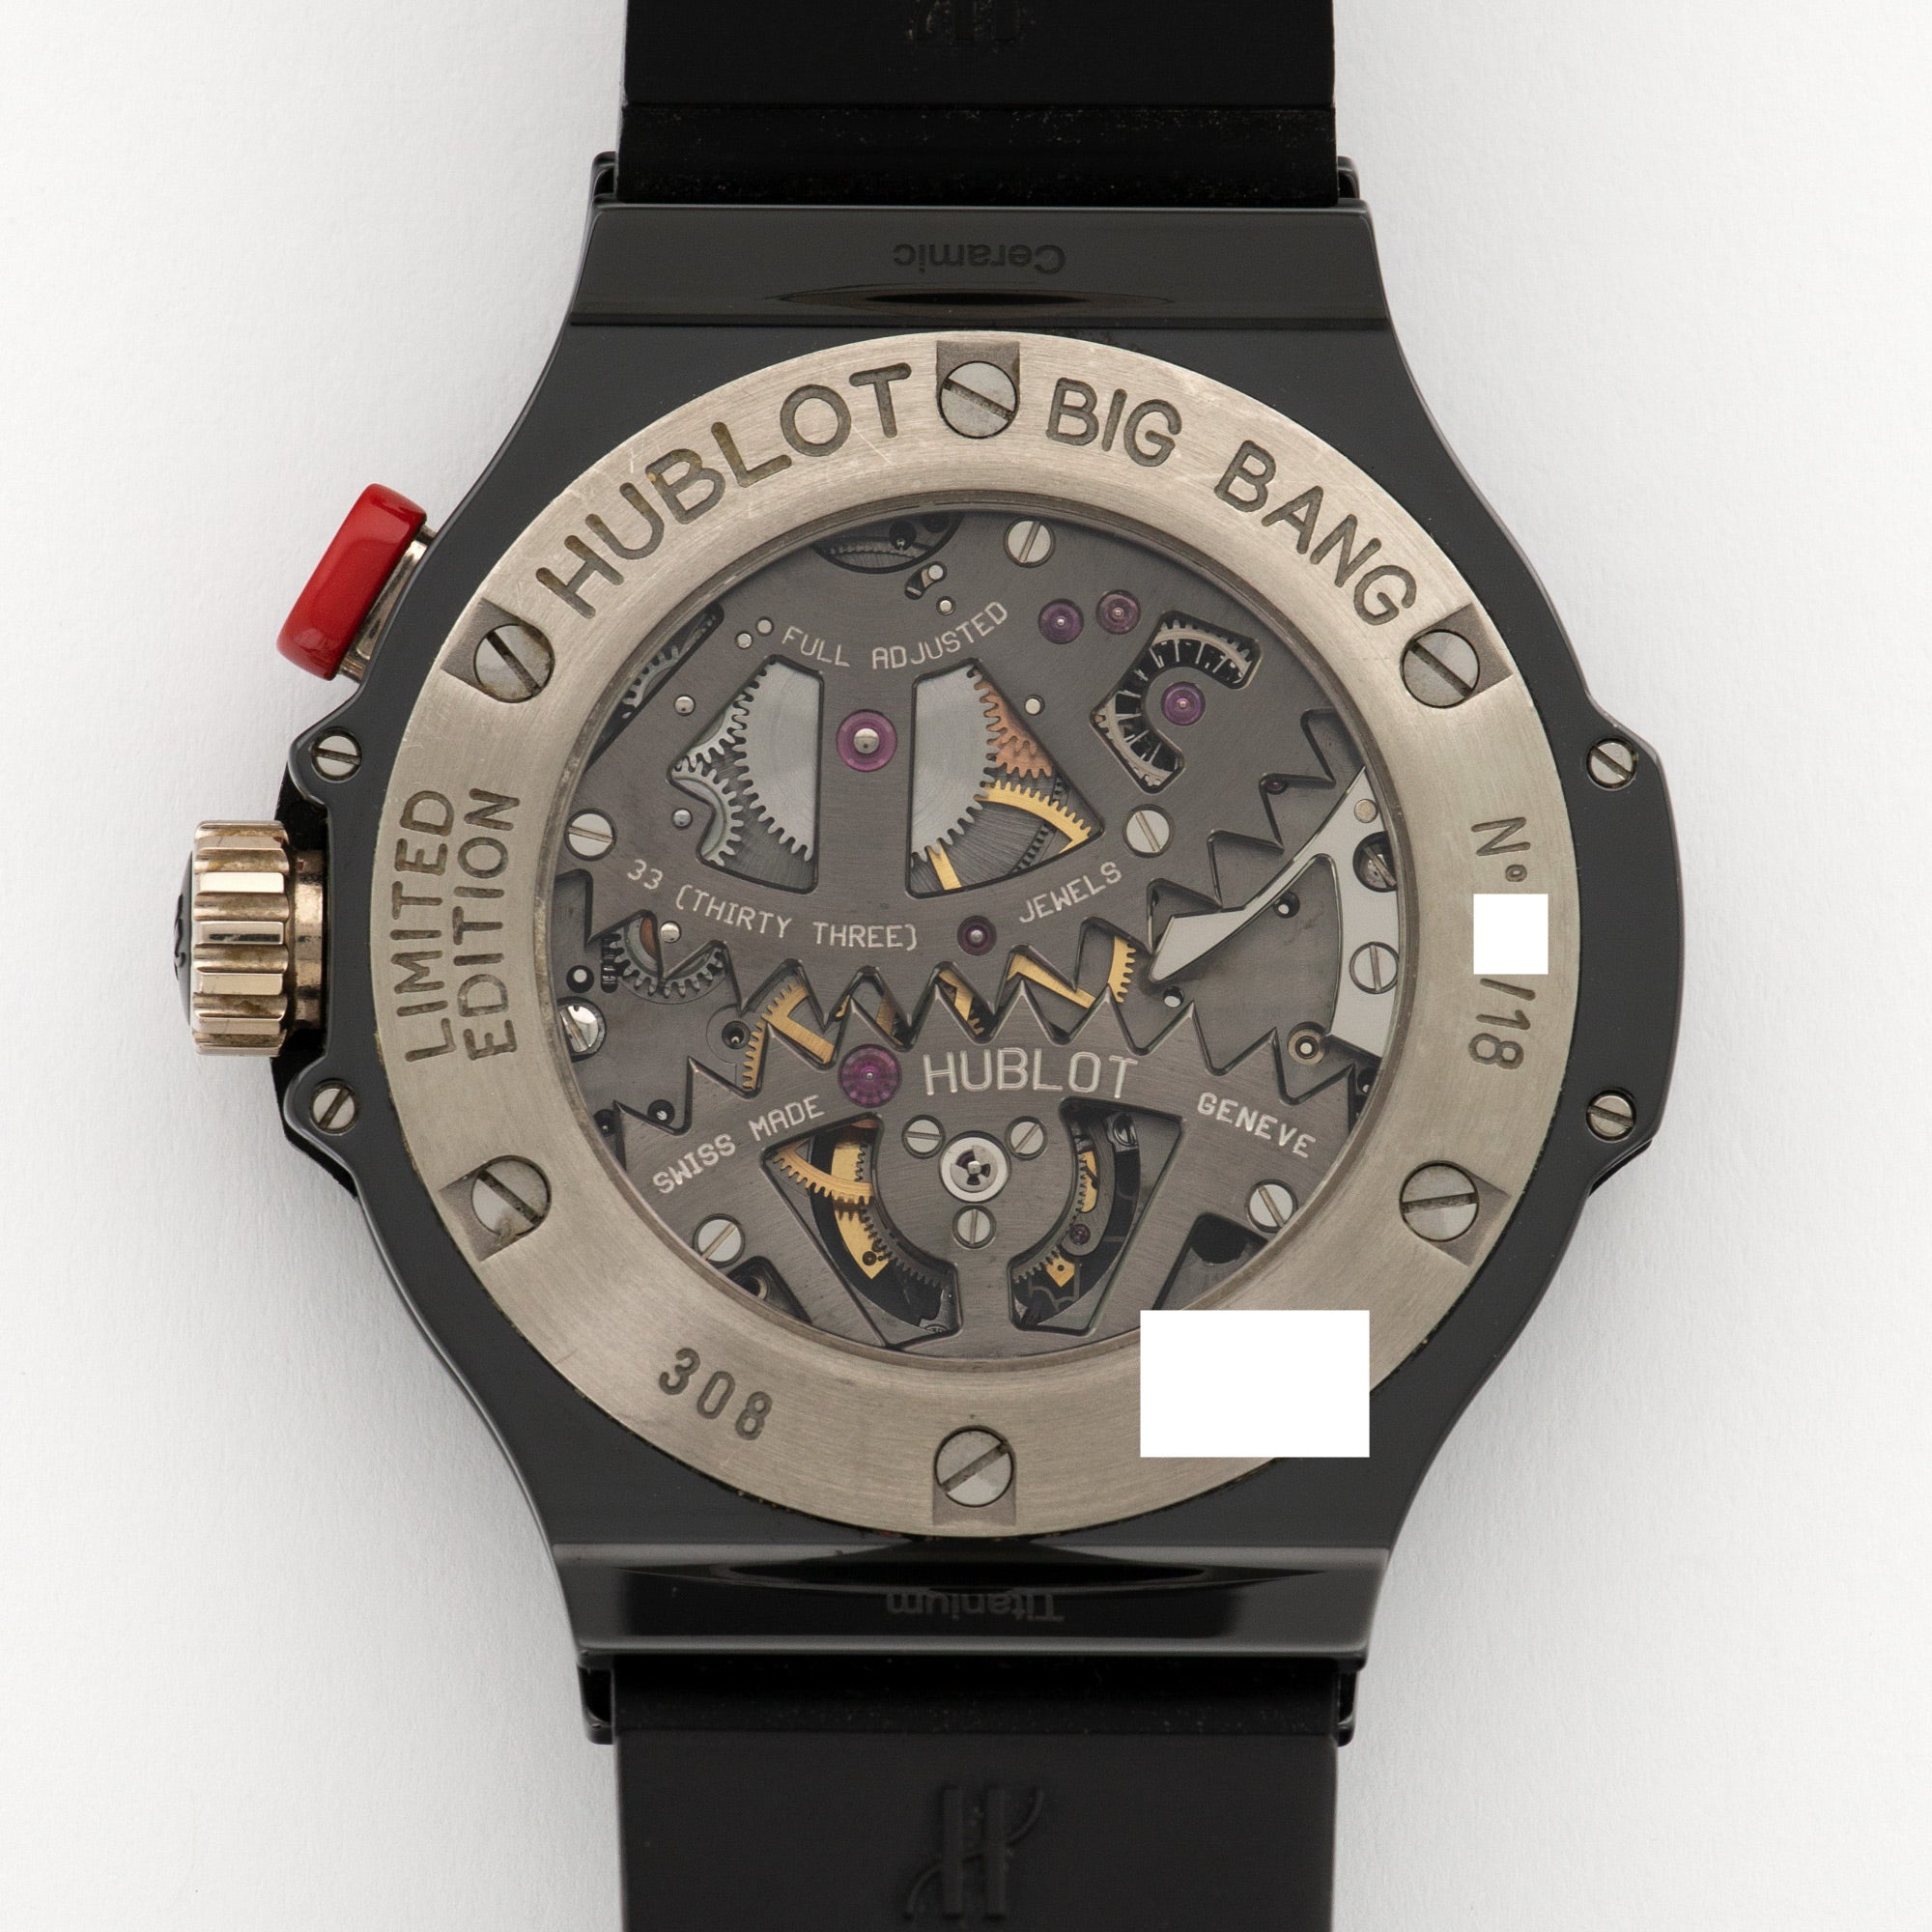 Hublot Big Bang Tourbillon 308.CI.134.RX Ceramic  Mint Gents Ceramic Skeletonized Tourbillon 44mm Manual Current Black Rubber Box, Manuals, Warranty Card